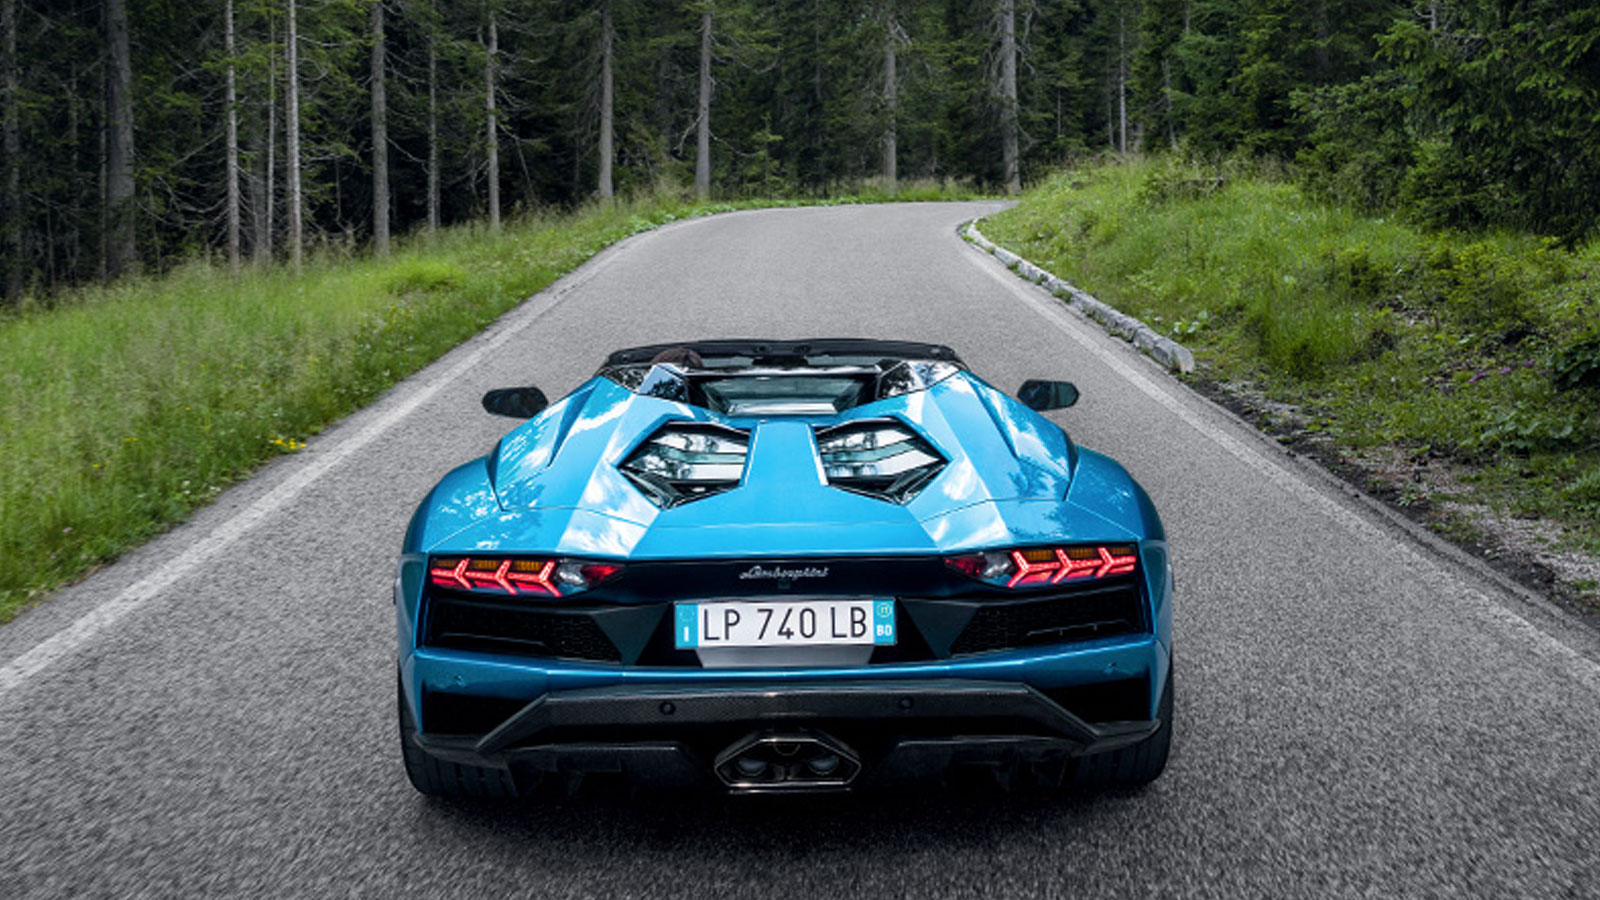 Lamborghini Aventador S Roadster - The Open Top Icon image 13